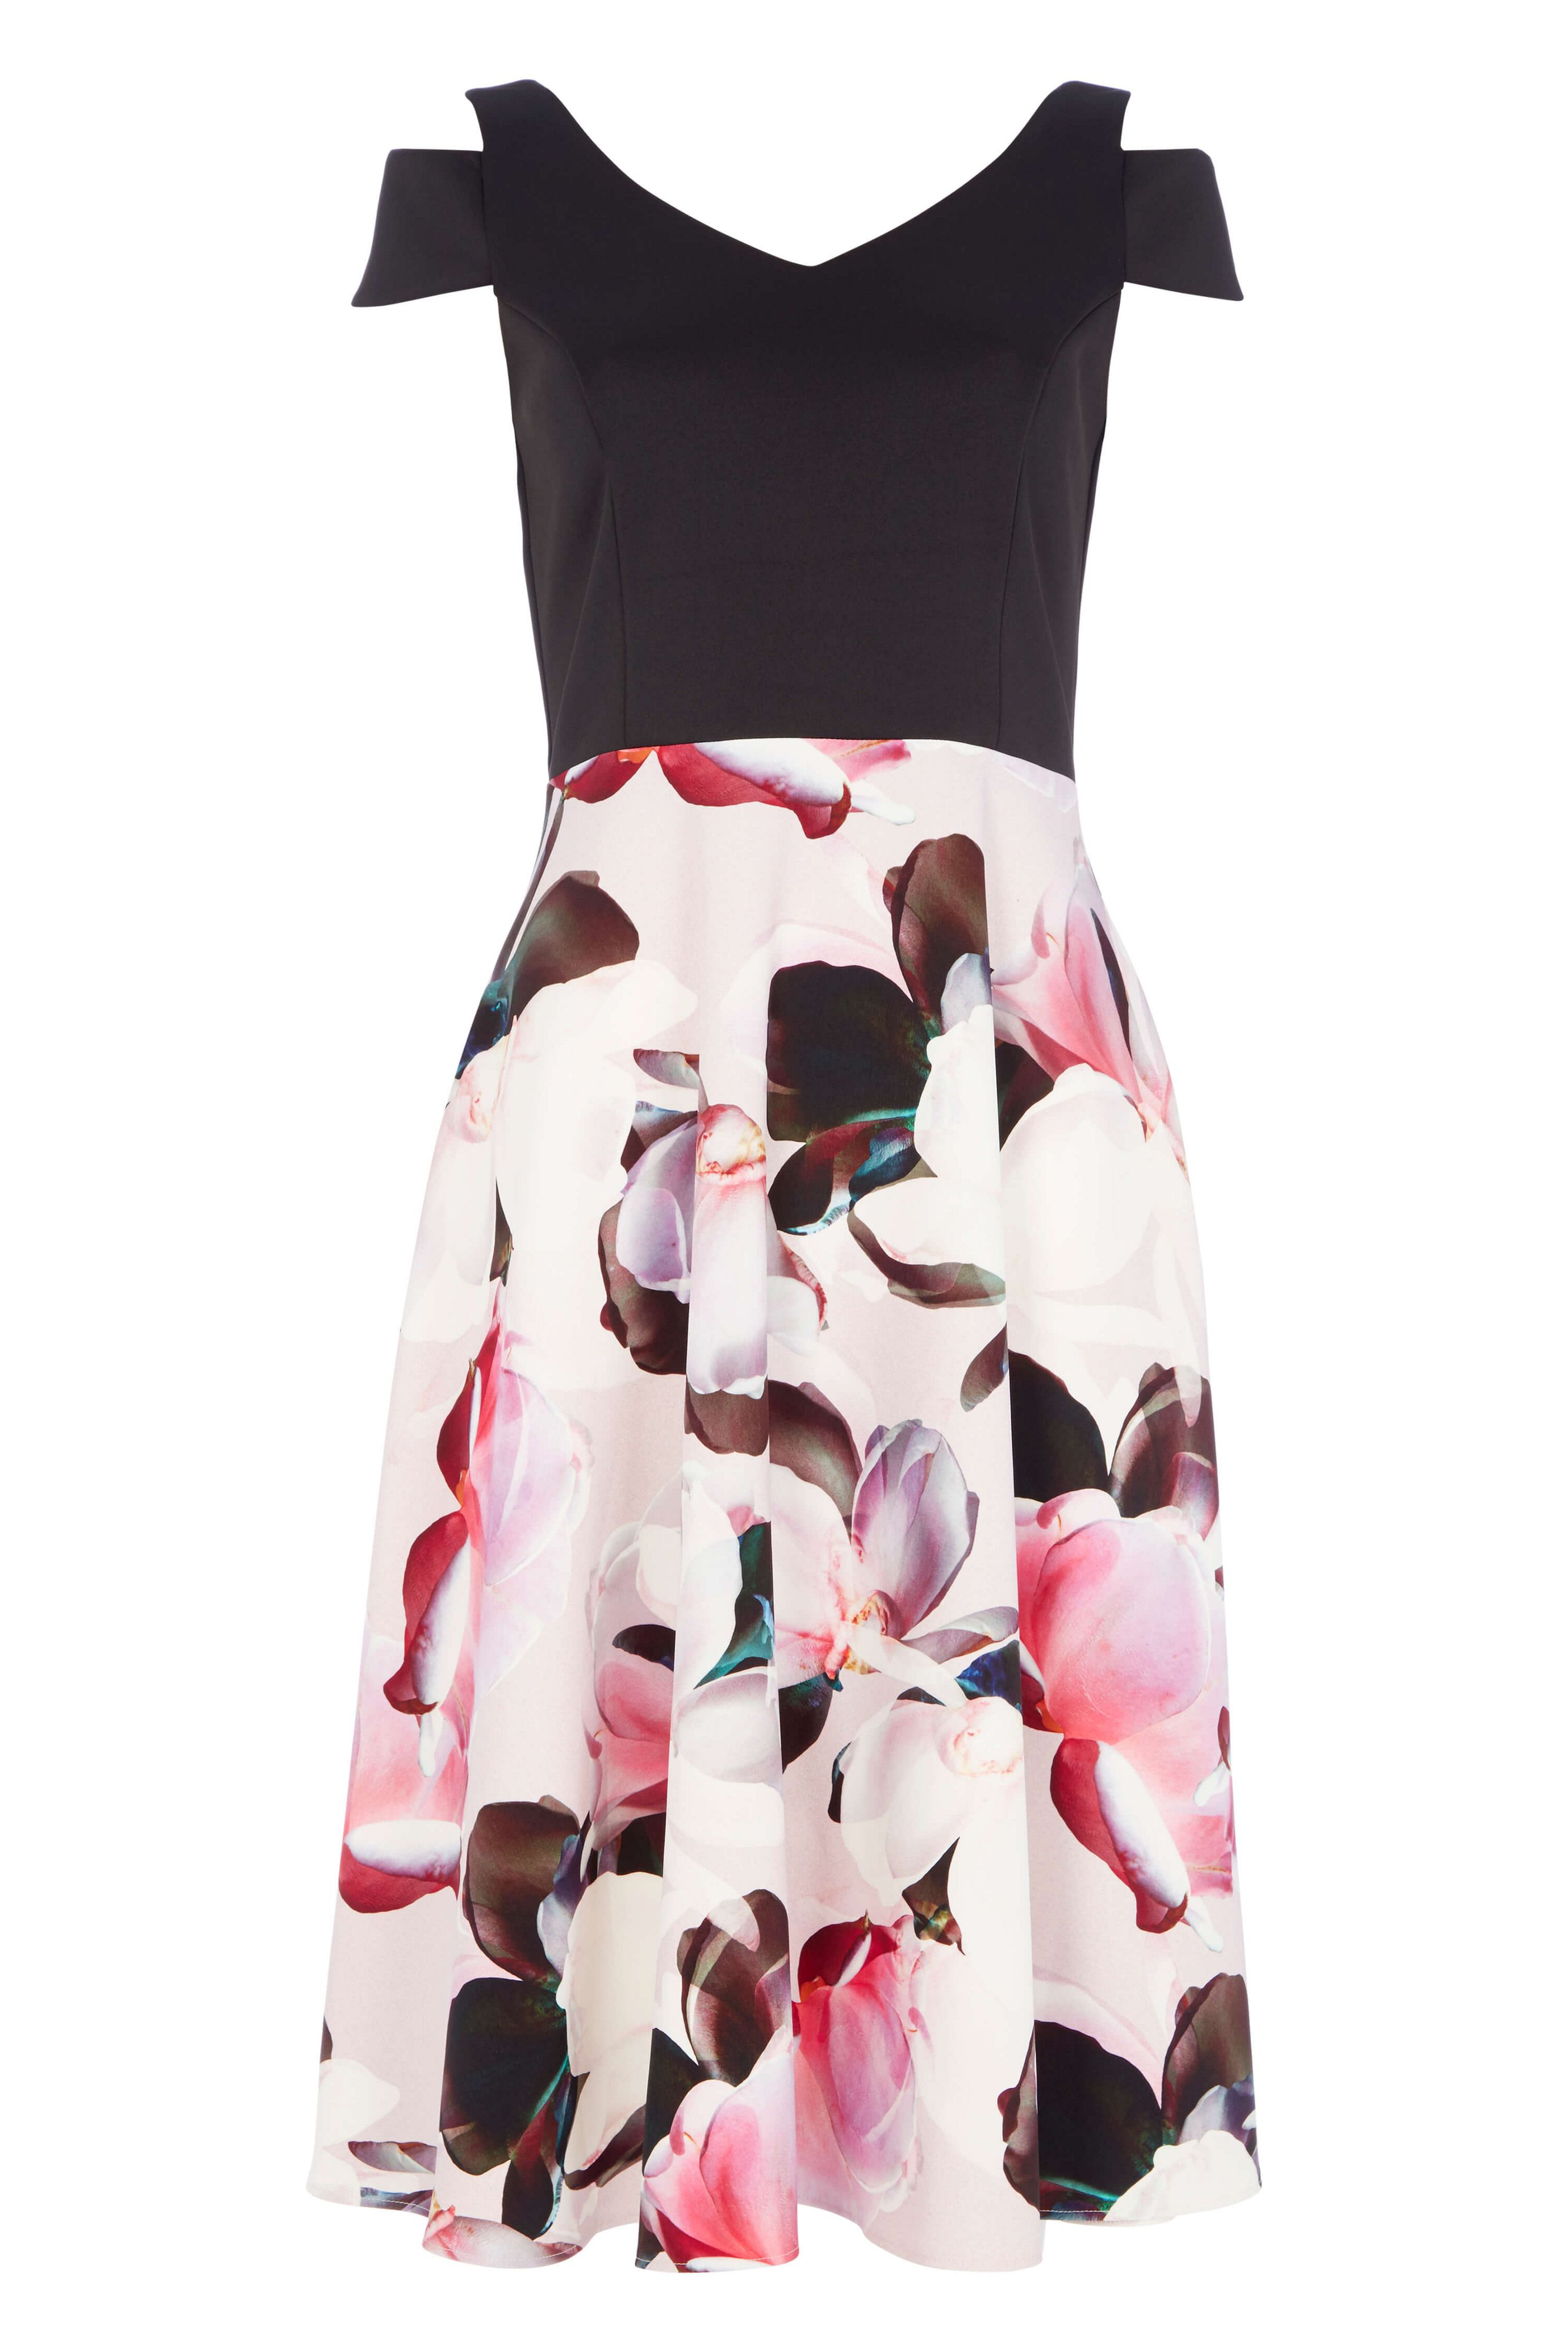 Roman Originals Fit And Flare Floral Dress, Pink